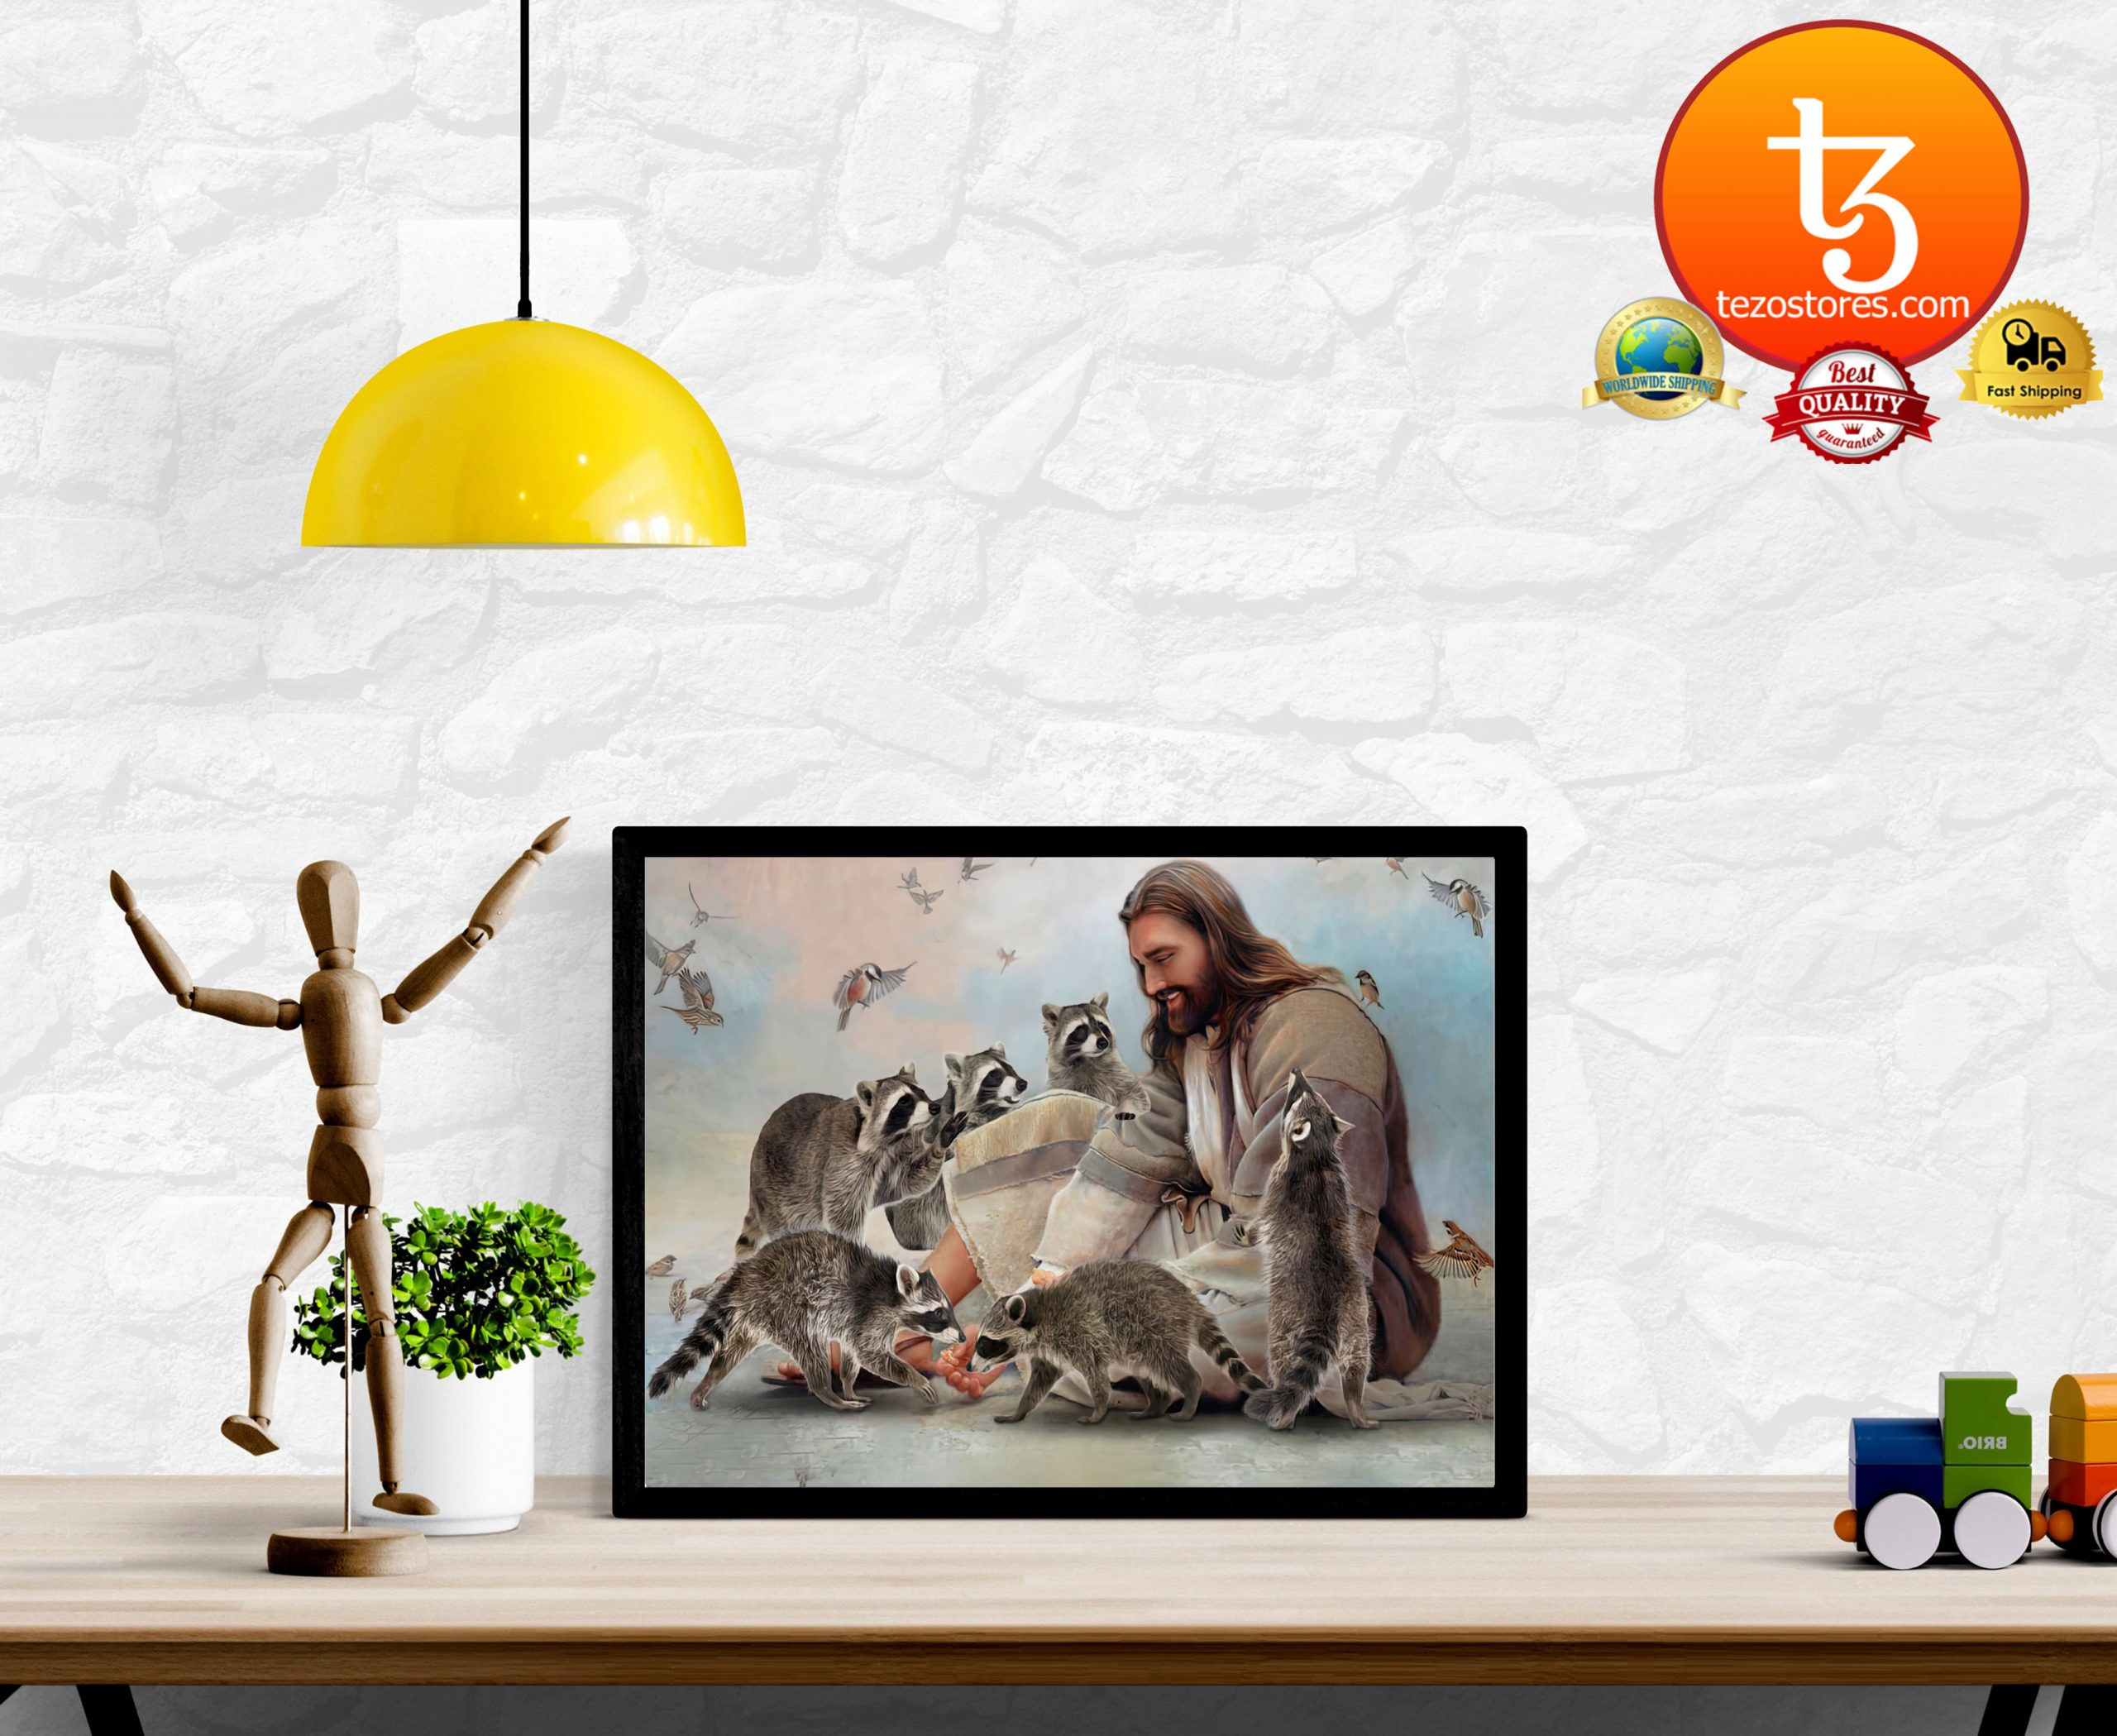 God surrounded by Raccoon Poster2